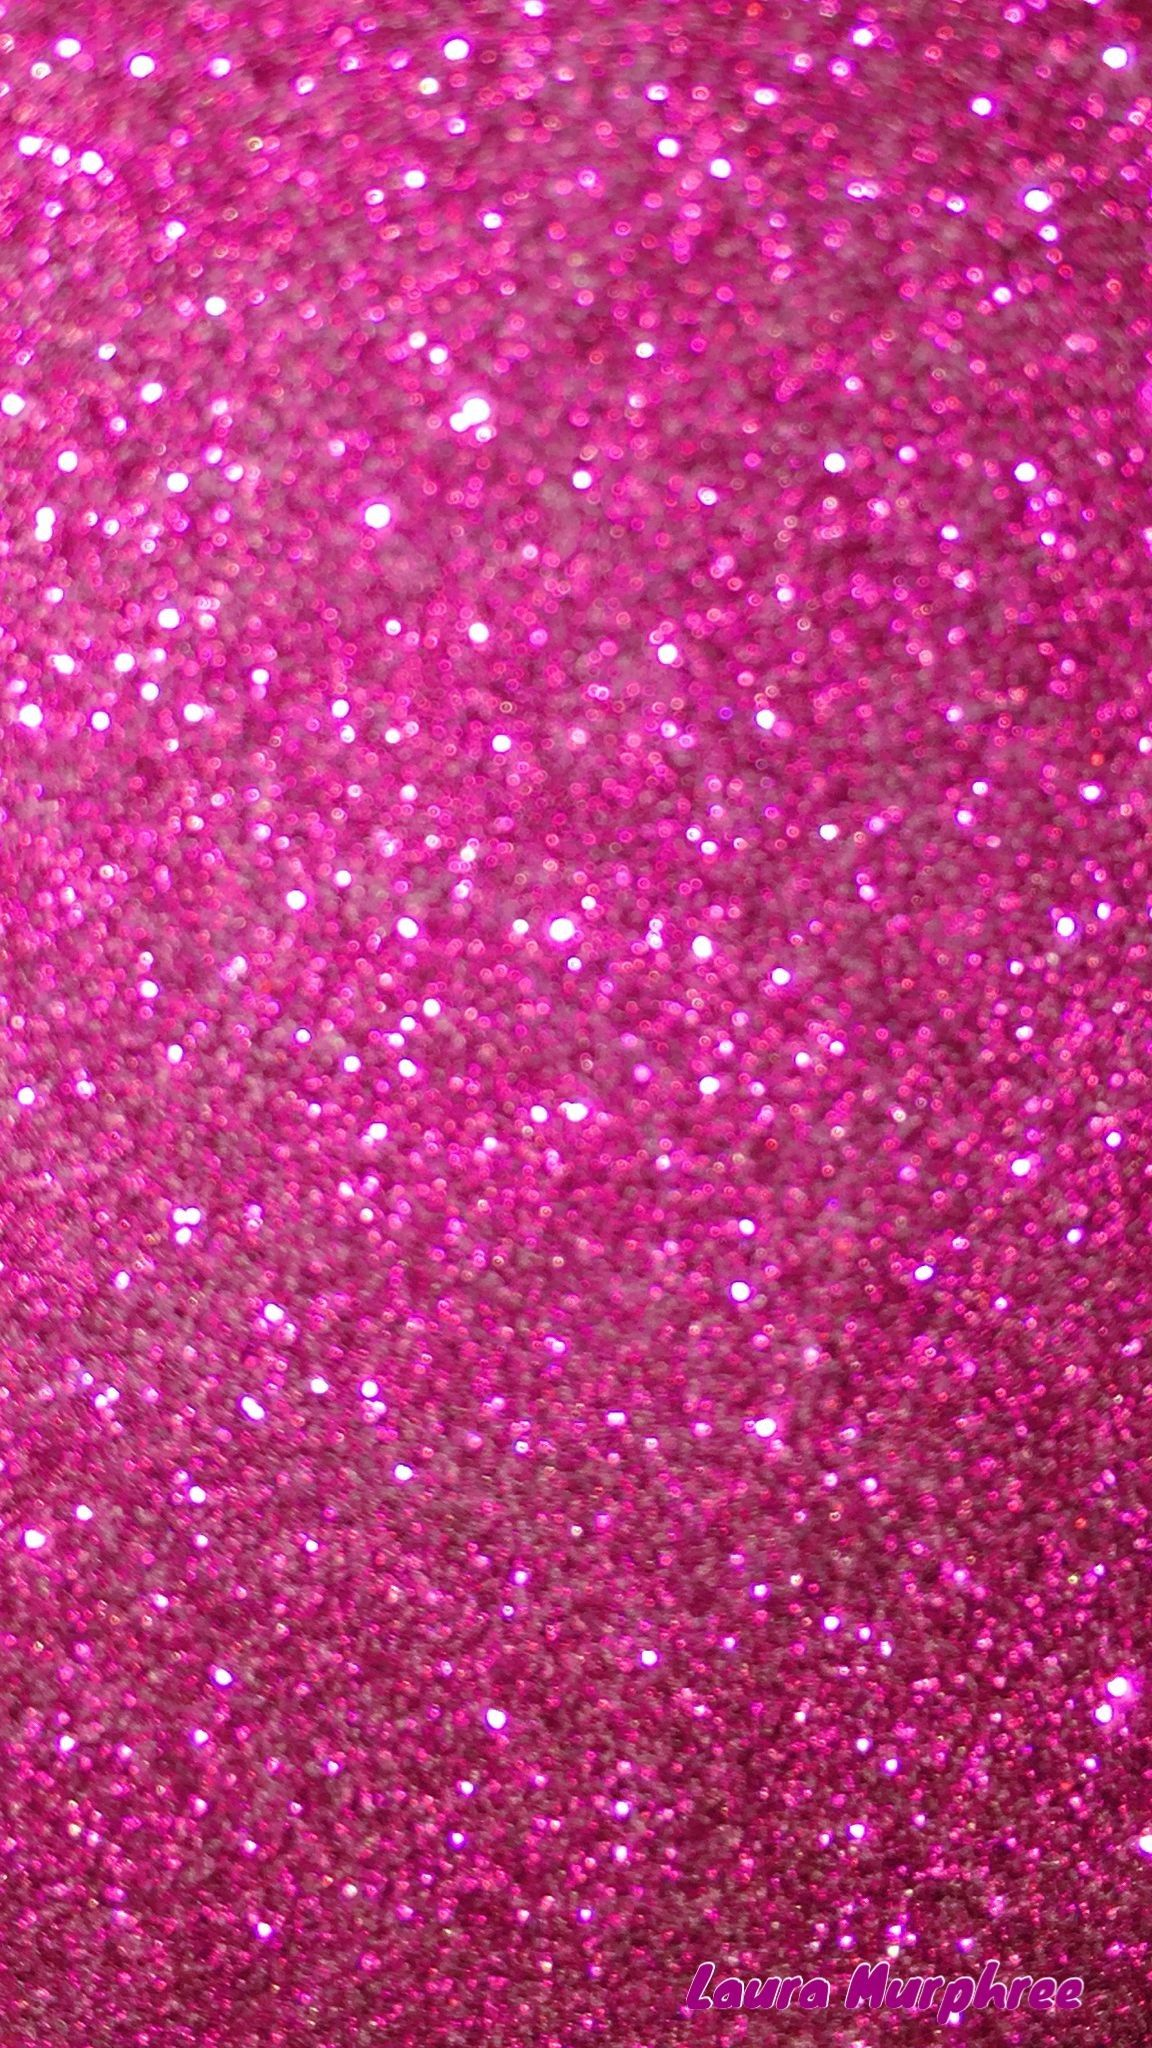 Pink Glitter Wallpapers   Top Pink Glitter Backgrounds 1152x2048